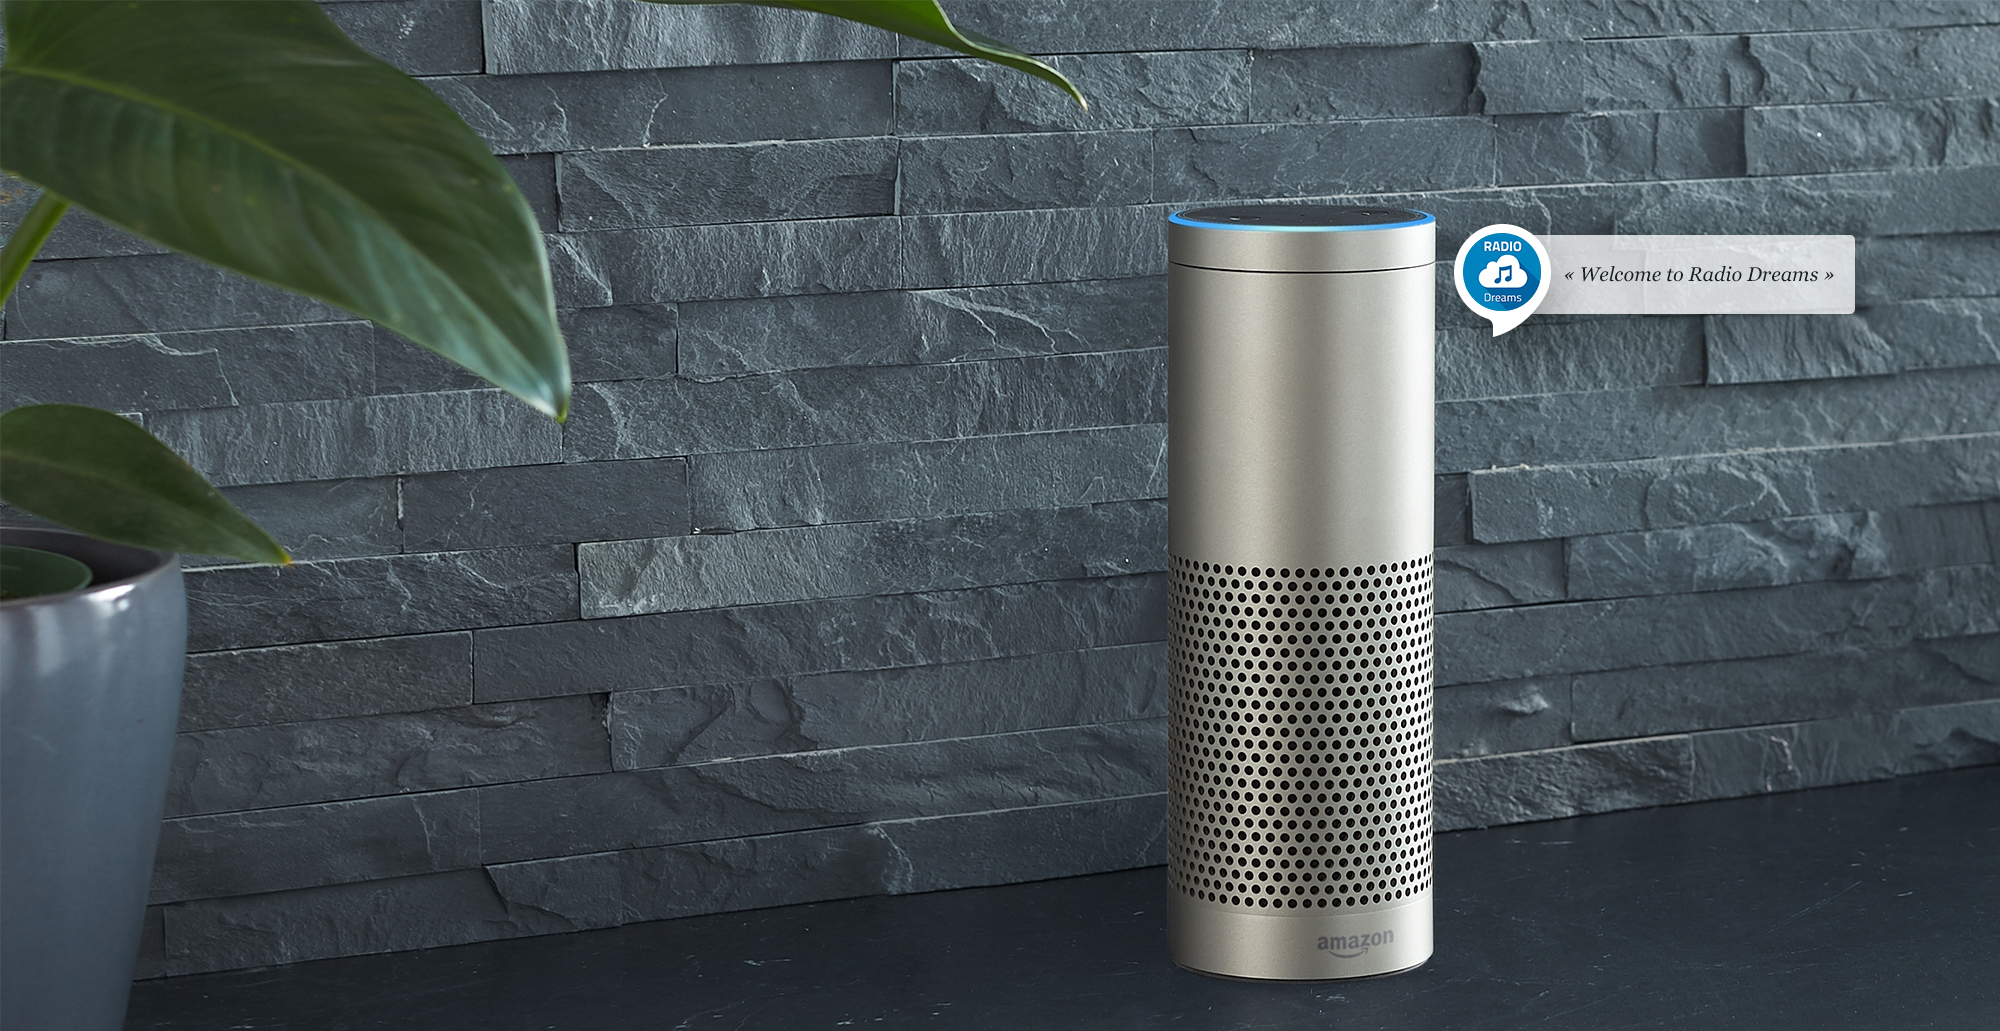 Add your Radio Station to a Smart Speaker - RadioKing